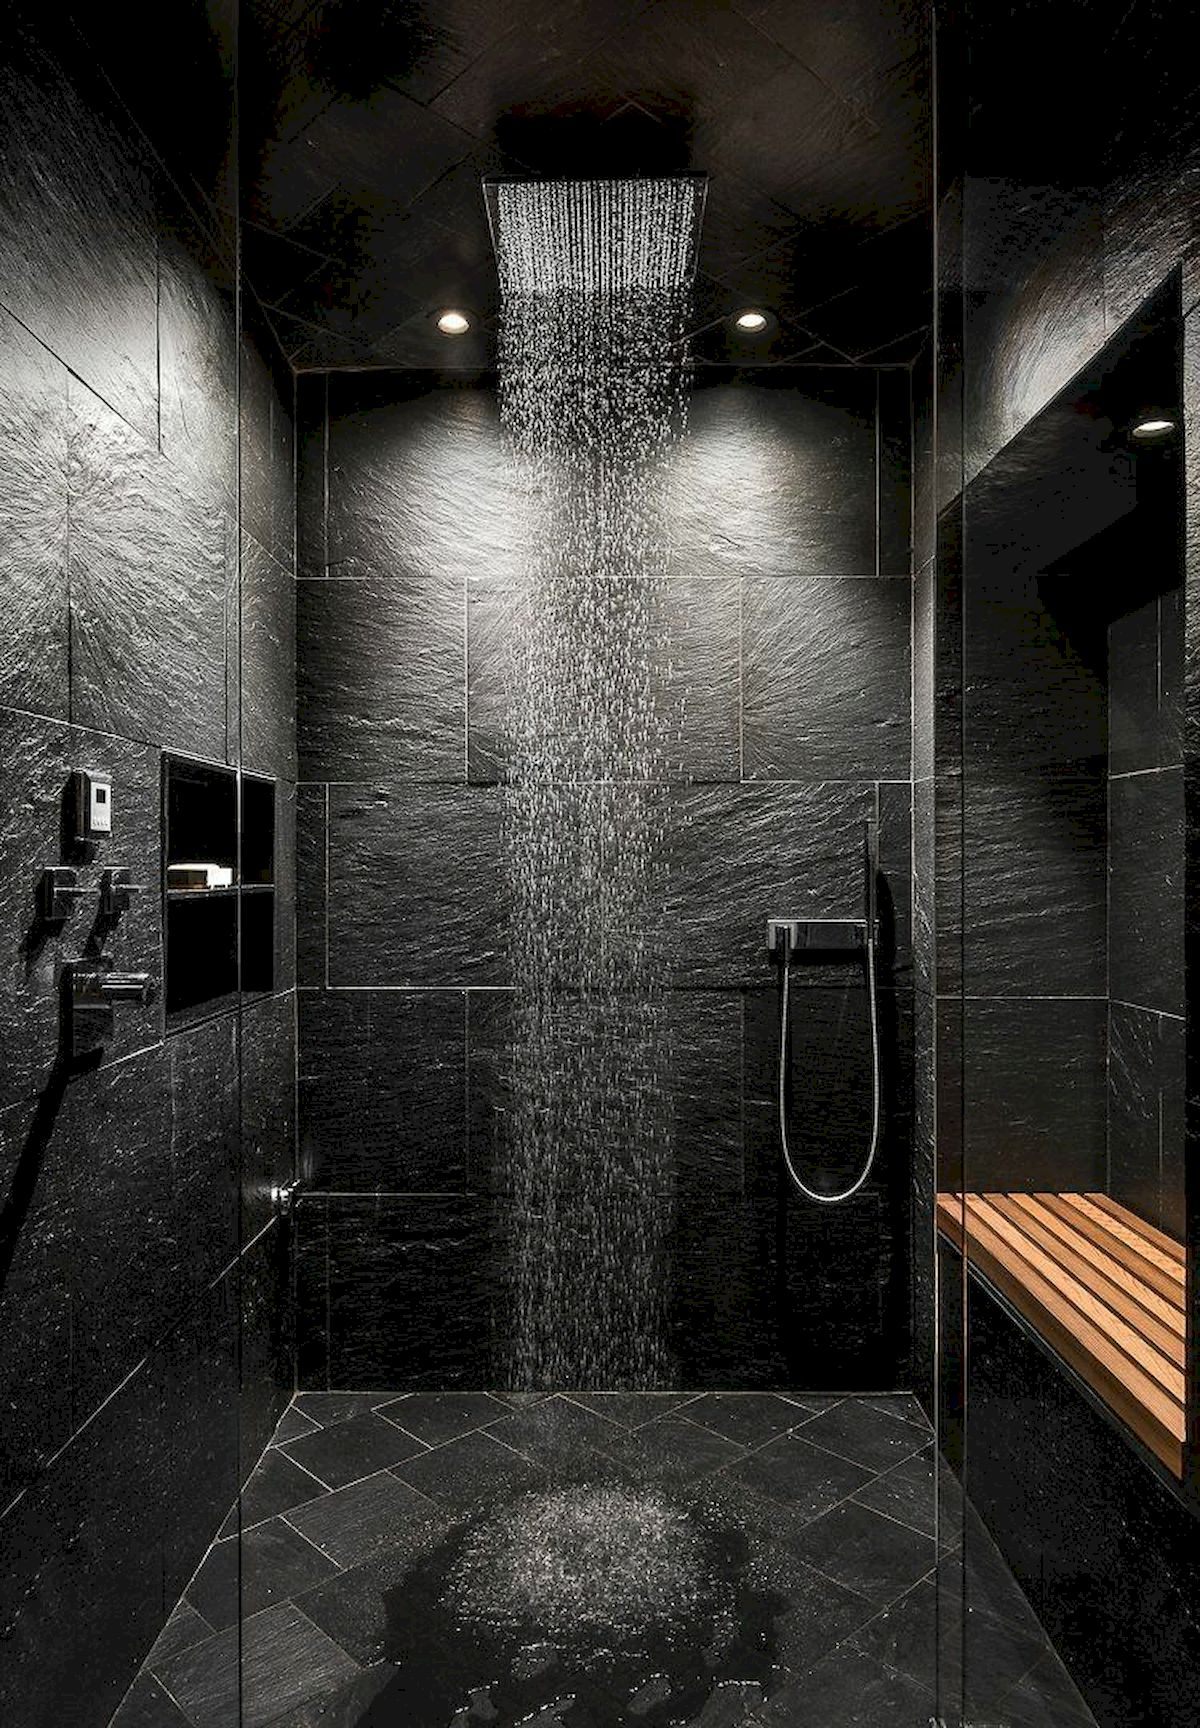 50-Cool-Shower-Design-Ideas-for-Your-Bathroom-1 Small Bathrooms Minimalistic Design on chic bathrooms, weird bathrooms, beautiful bathrooms, rock bathrooms, christmas bathrooms, feminine bathrooms, house bathrooms, modern bathrooms, funky bathrooms, timeless bathrooms, themed bathrooms, stylish bathrooms, home bathrooms, dark bathrooms, sports bathrooms,